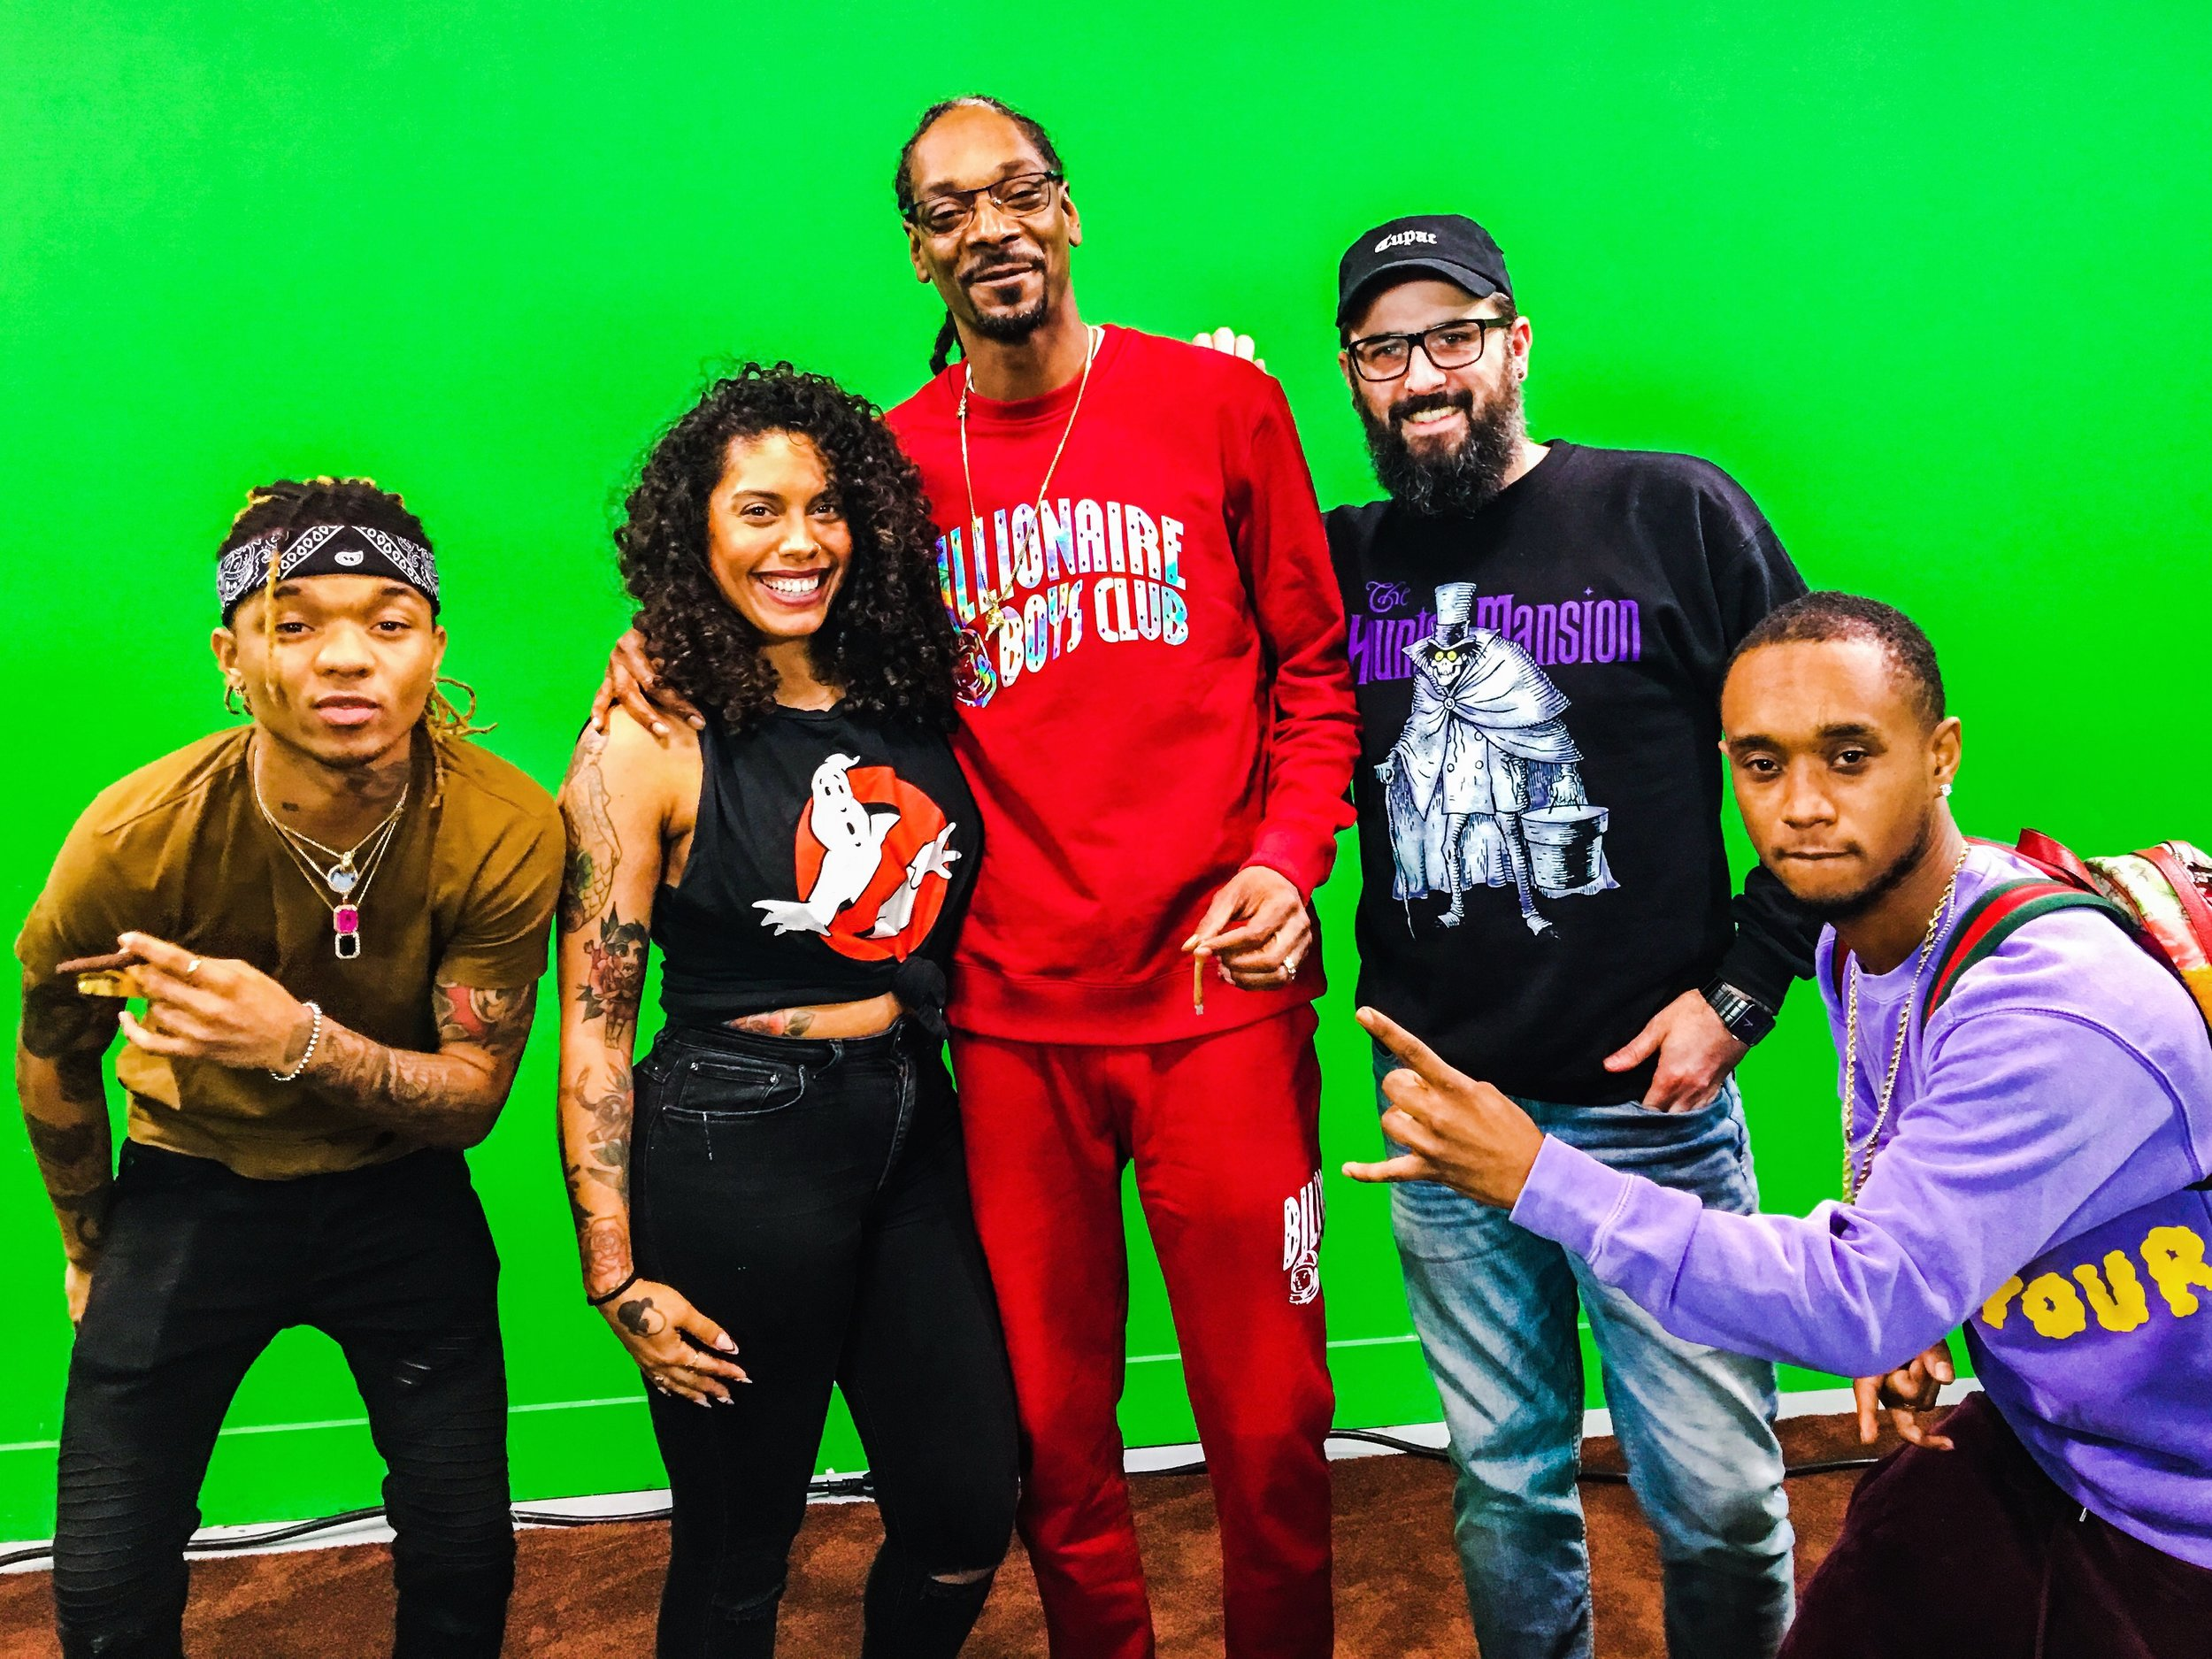 On set of GGN with Rae Sremmurd & Snoop Dogg